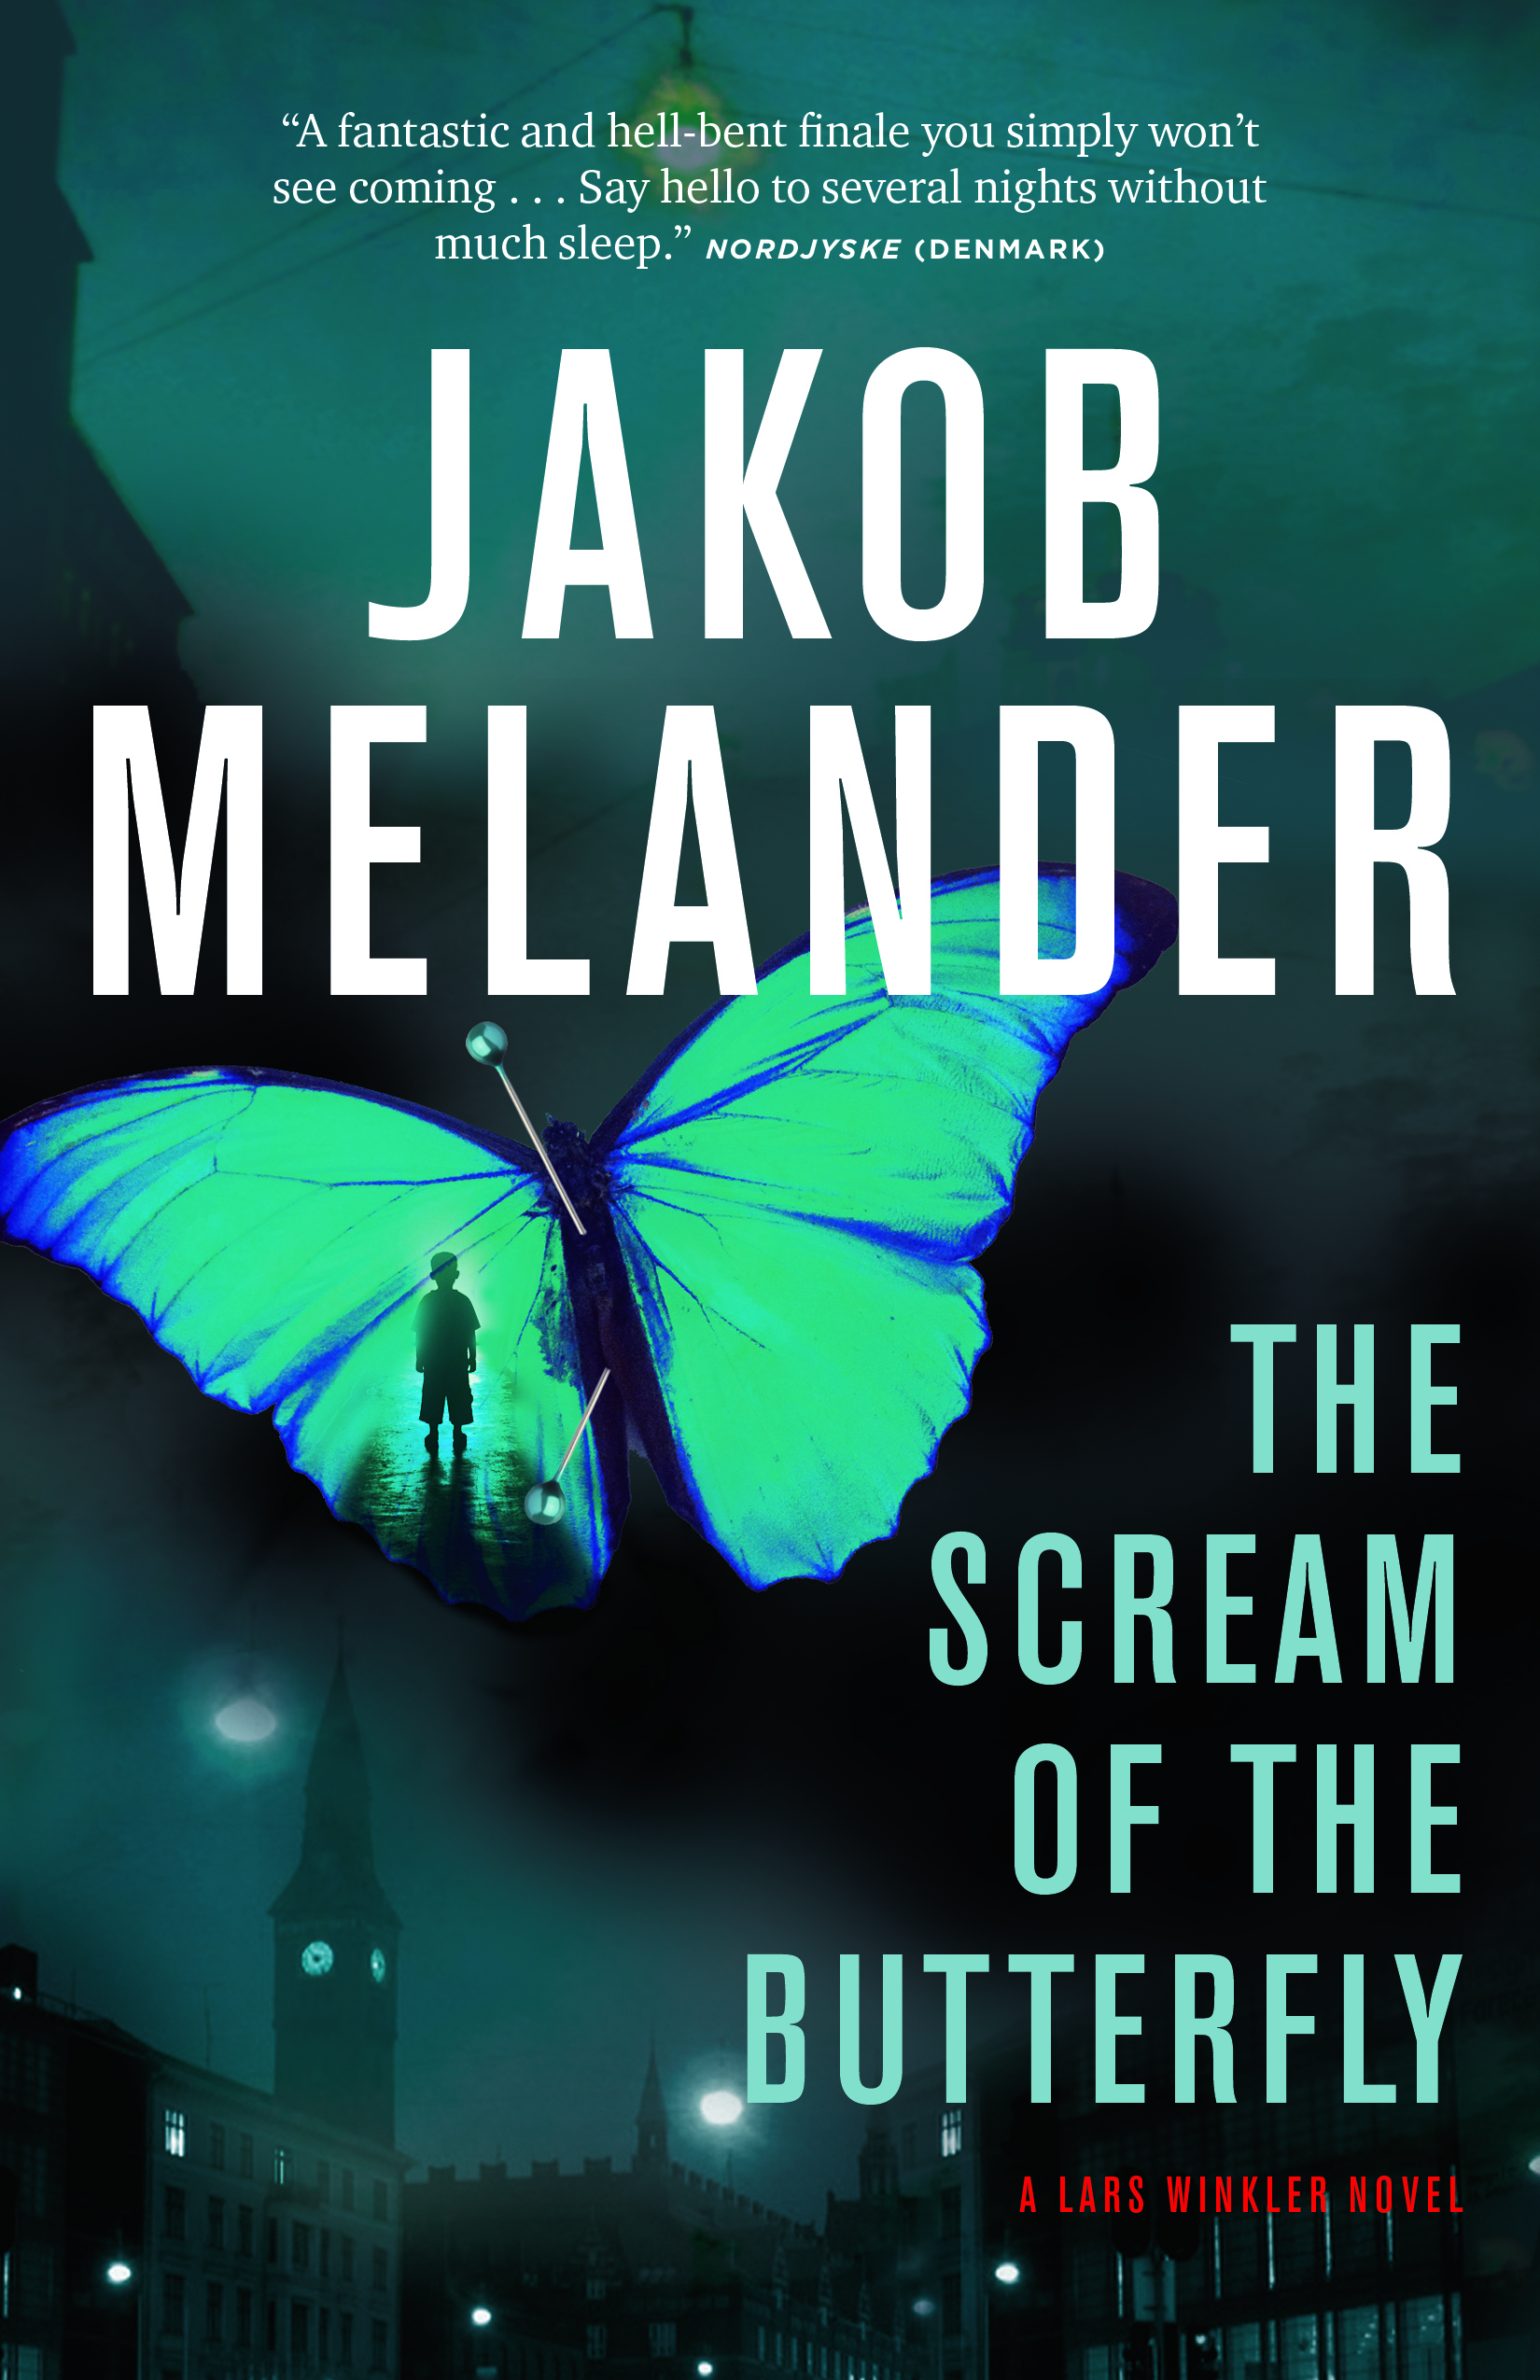 The Scream of the Butterfly by Jakob Melander